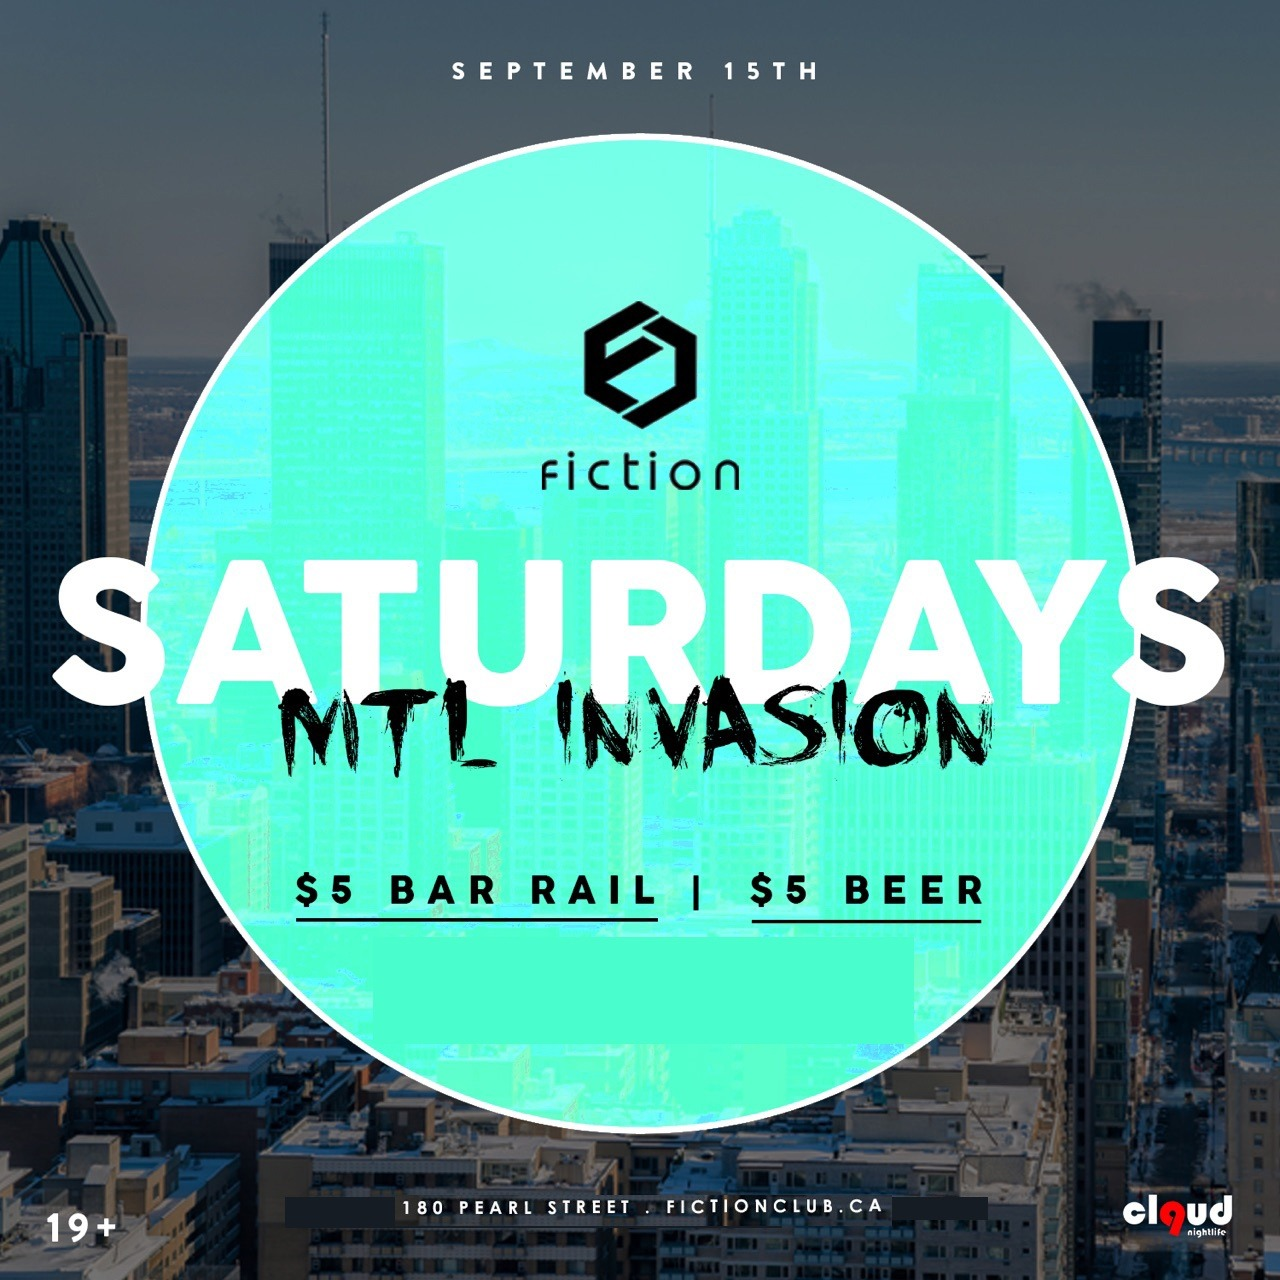 Saturdays (19+) MTL Invasion @ Fiction // Sat Sept 15 | FREE Before 11PM